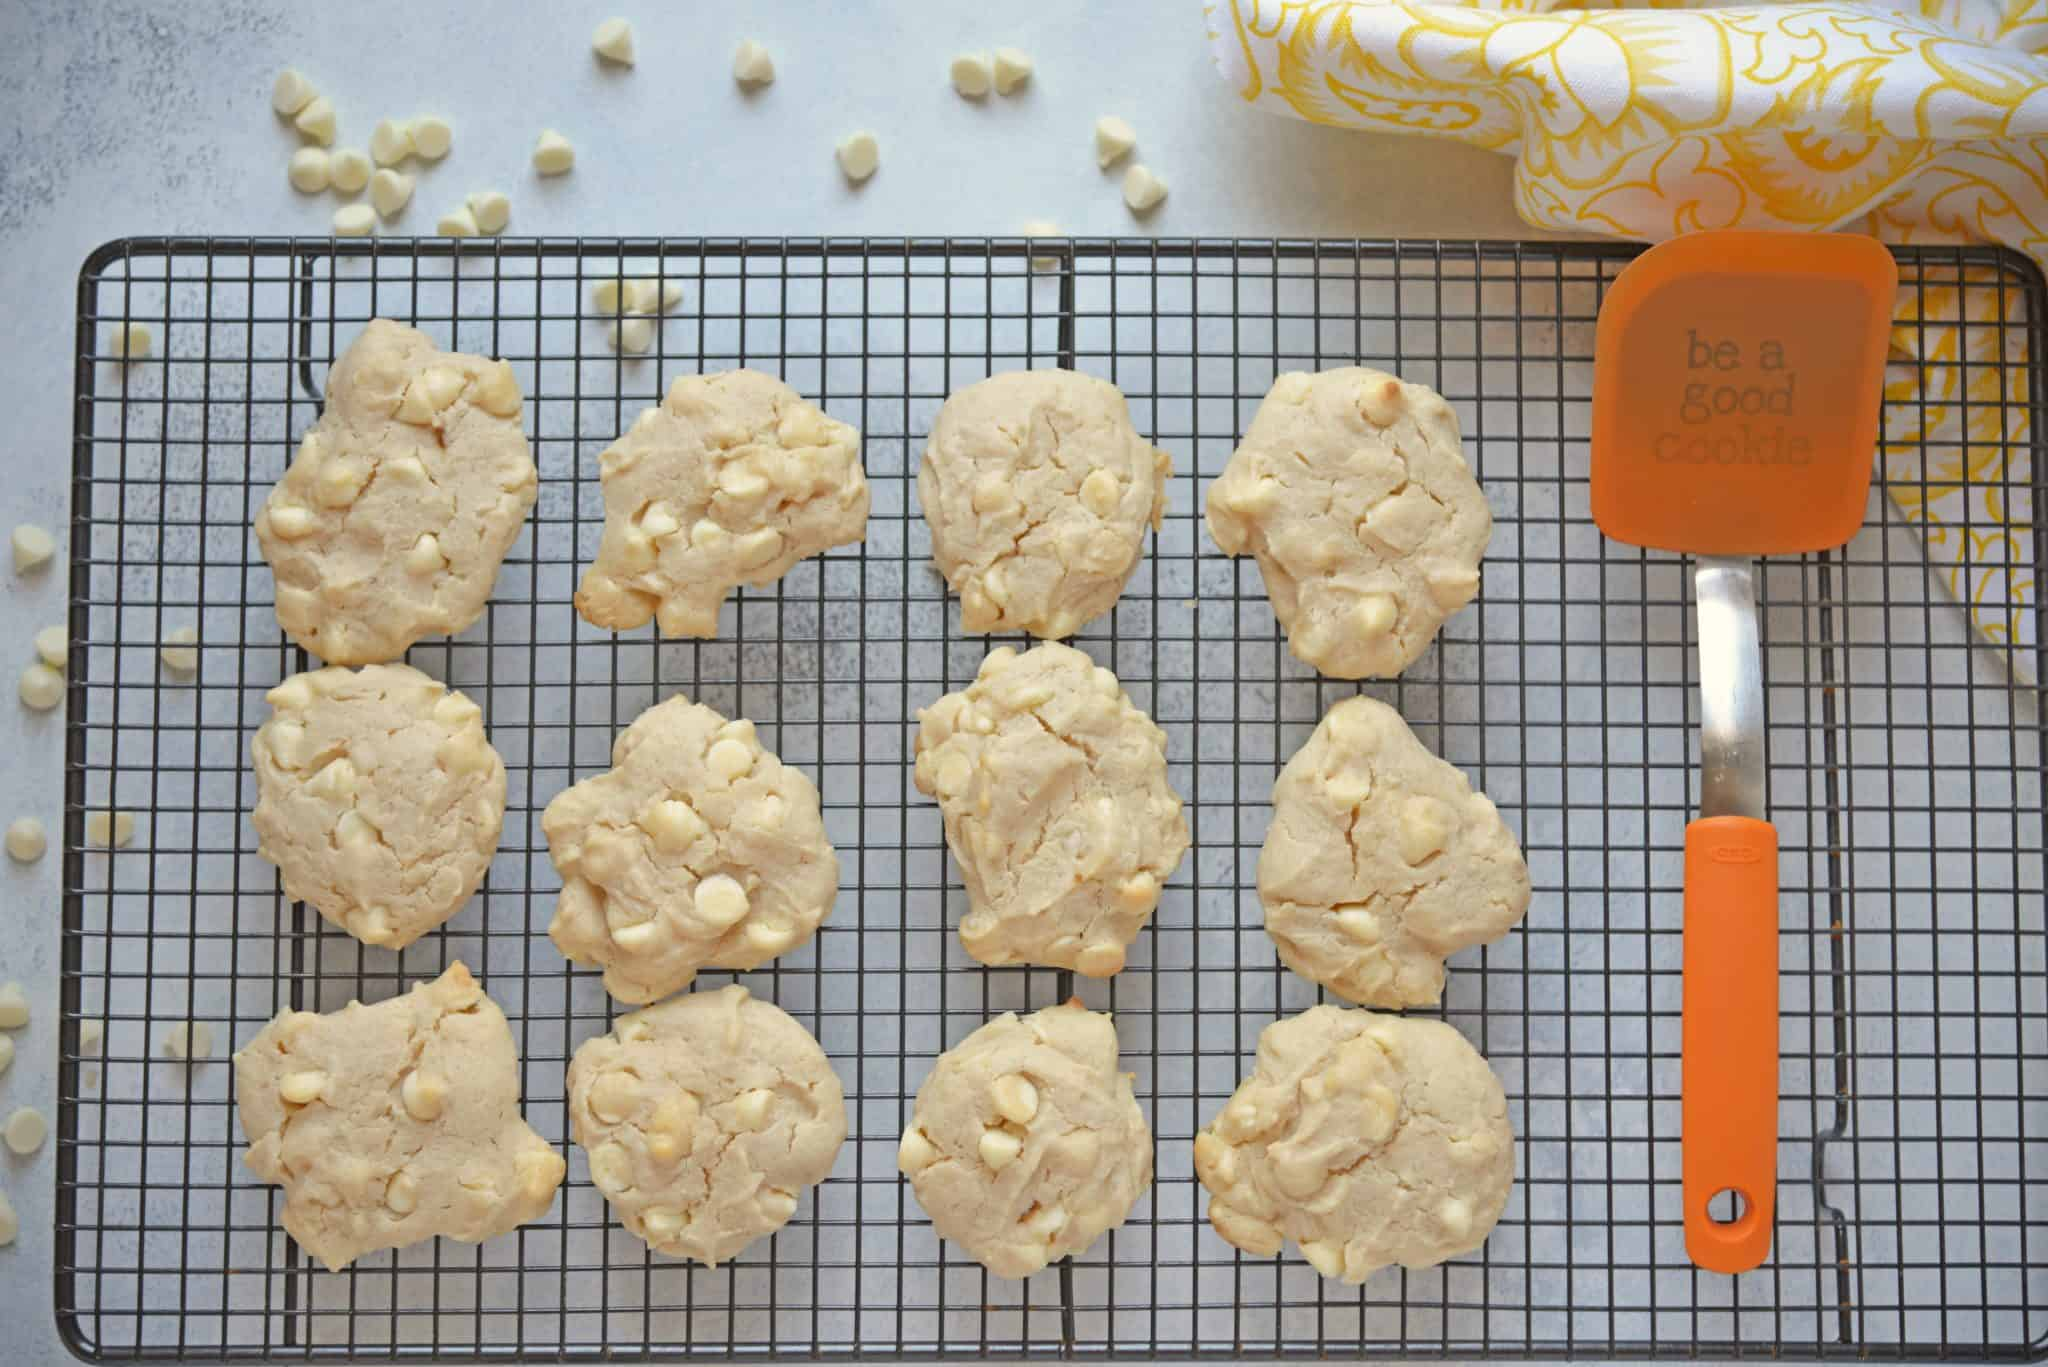 These Lemon White Chocolate Chip Cookies are a cross between a chocolate chip cookie & a lemon sugar cookie! A perfectly fluffy & mouth watering combination! #lemoncookierecipe #lemoncookies #whitechocolatechipcookies www.savoryexperiments.com